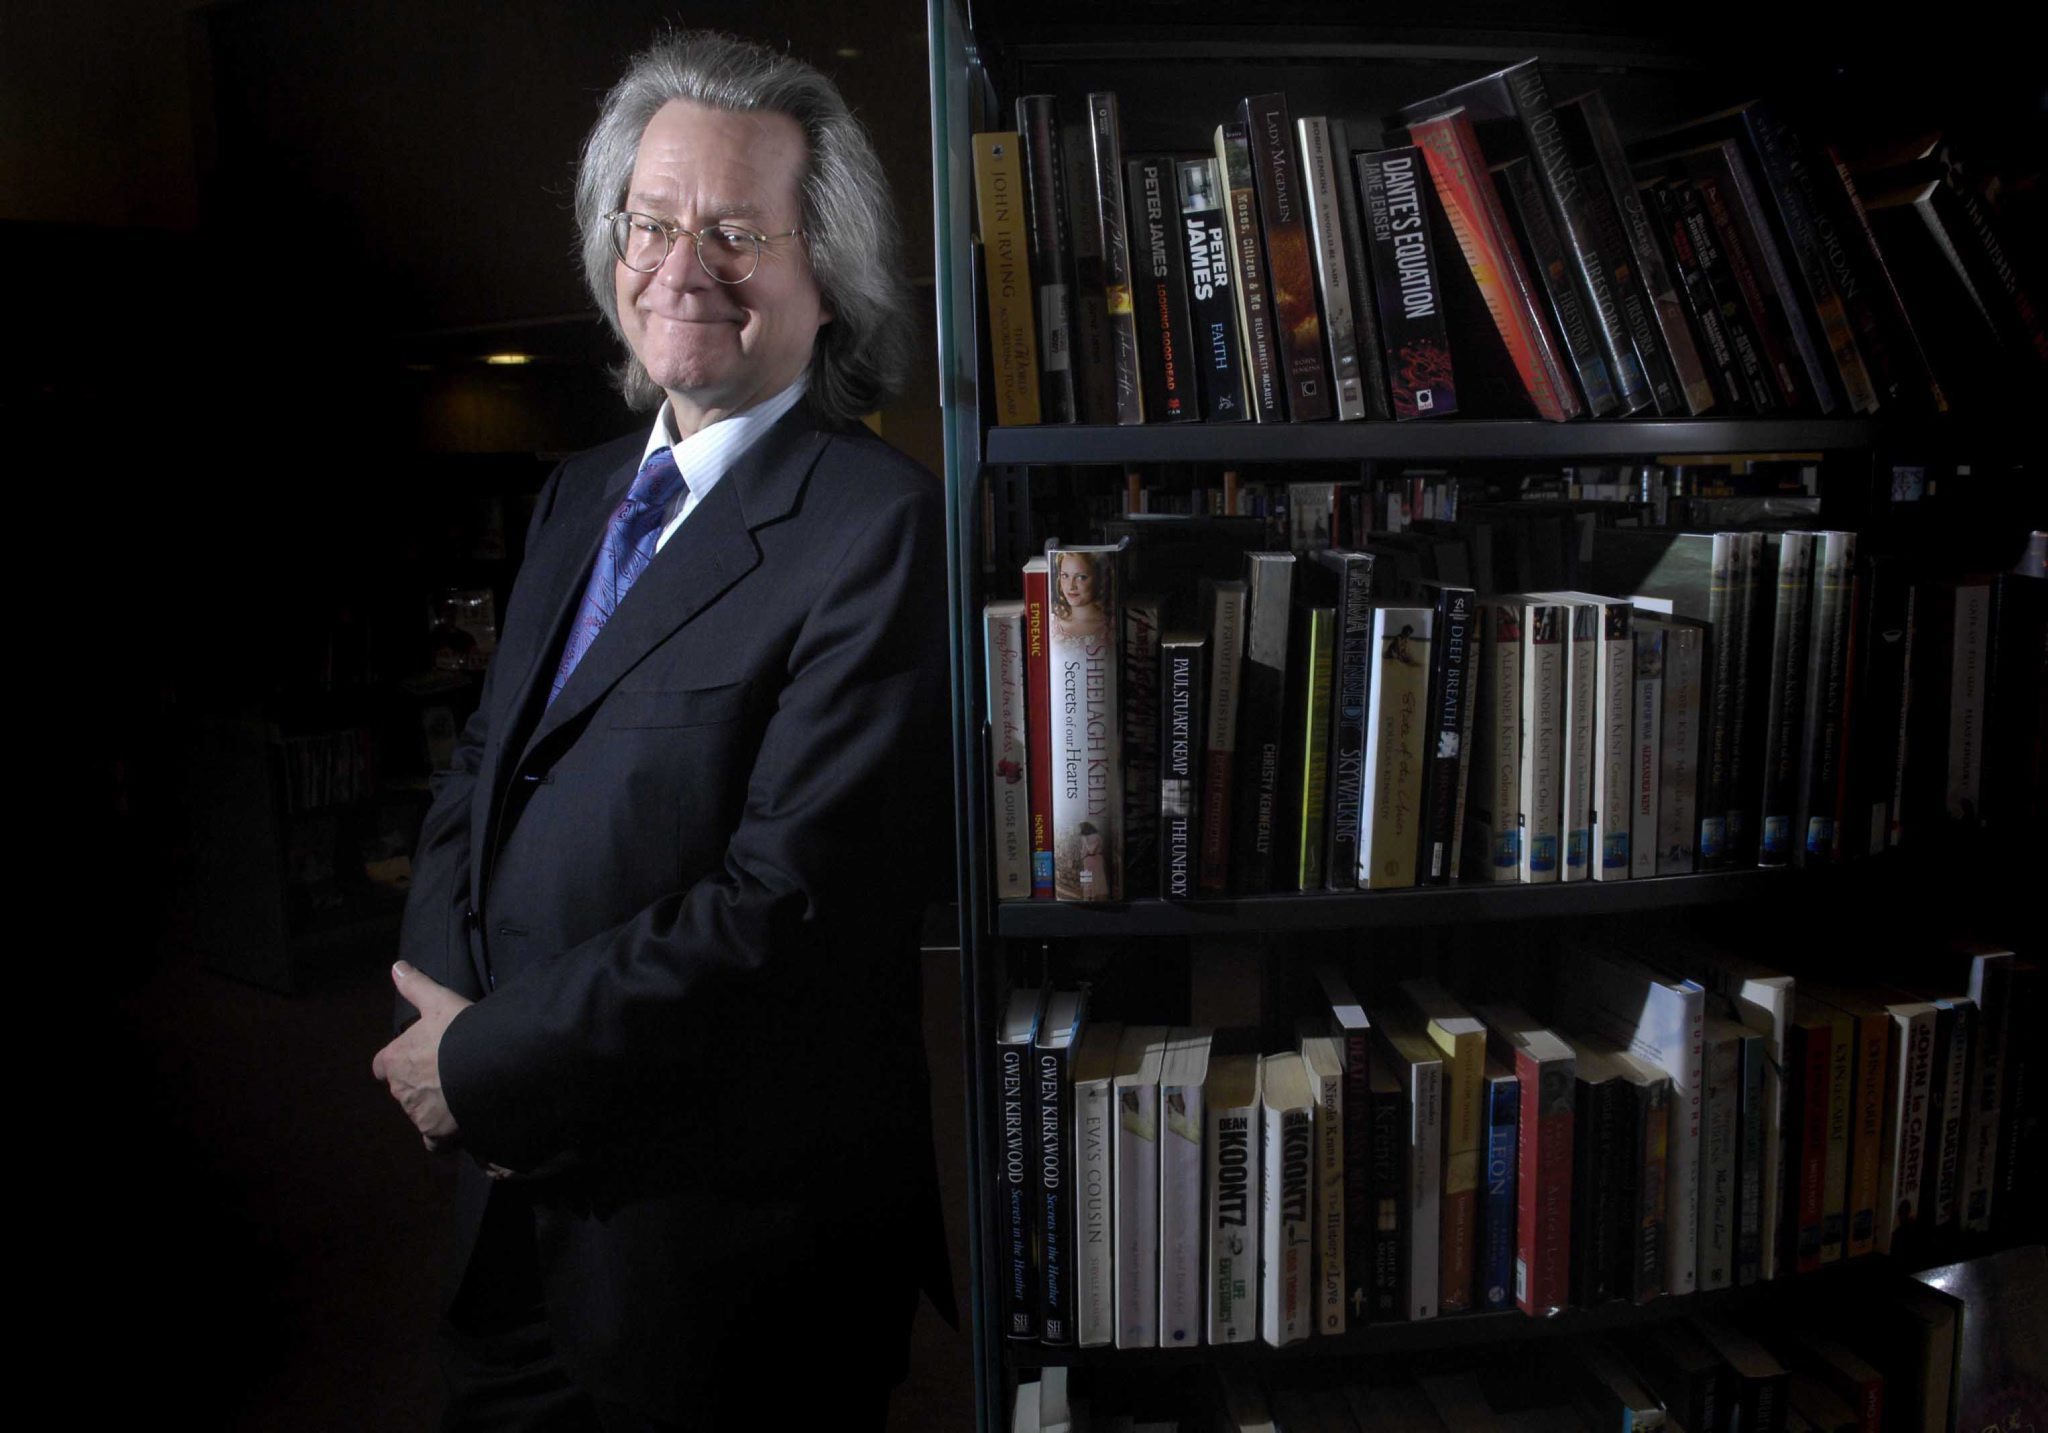 Leading philosopher AC Grayling on why he'll be campaigning for independence